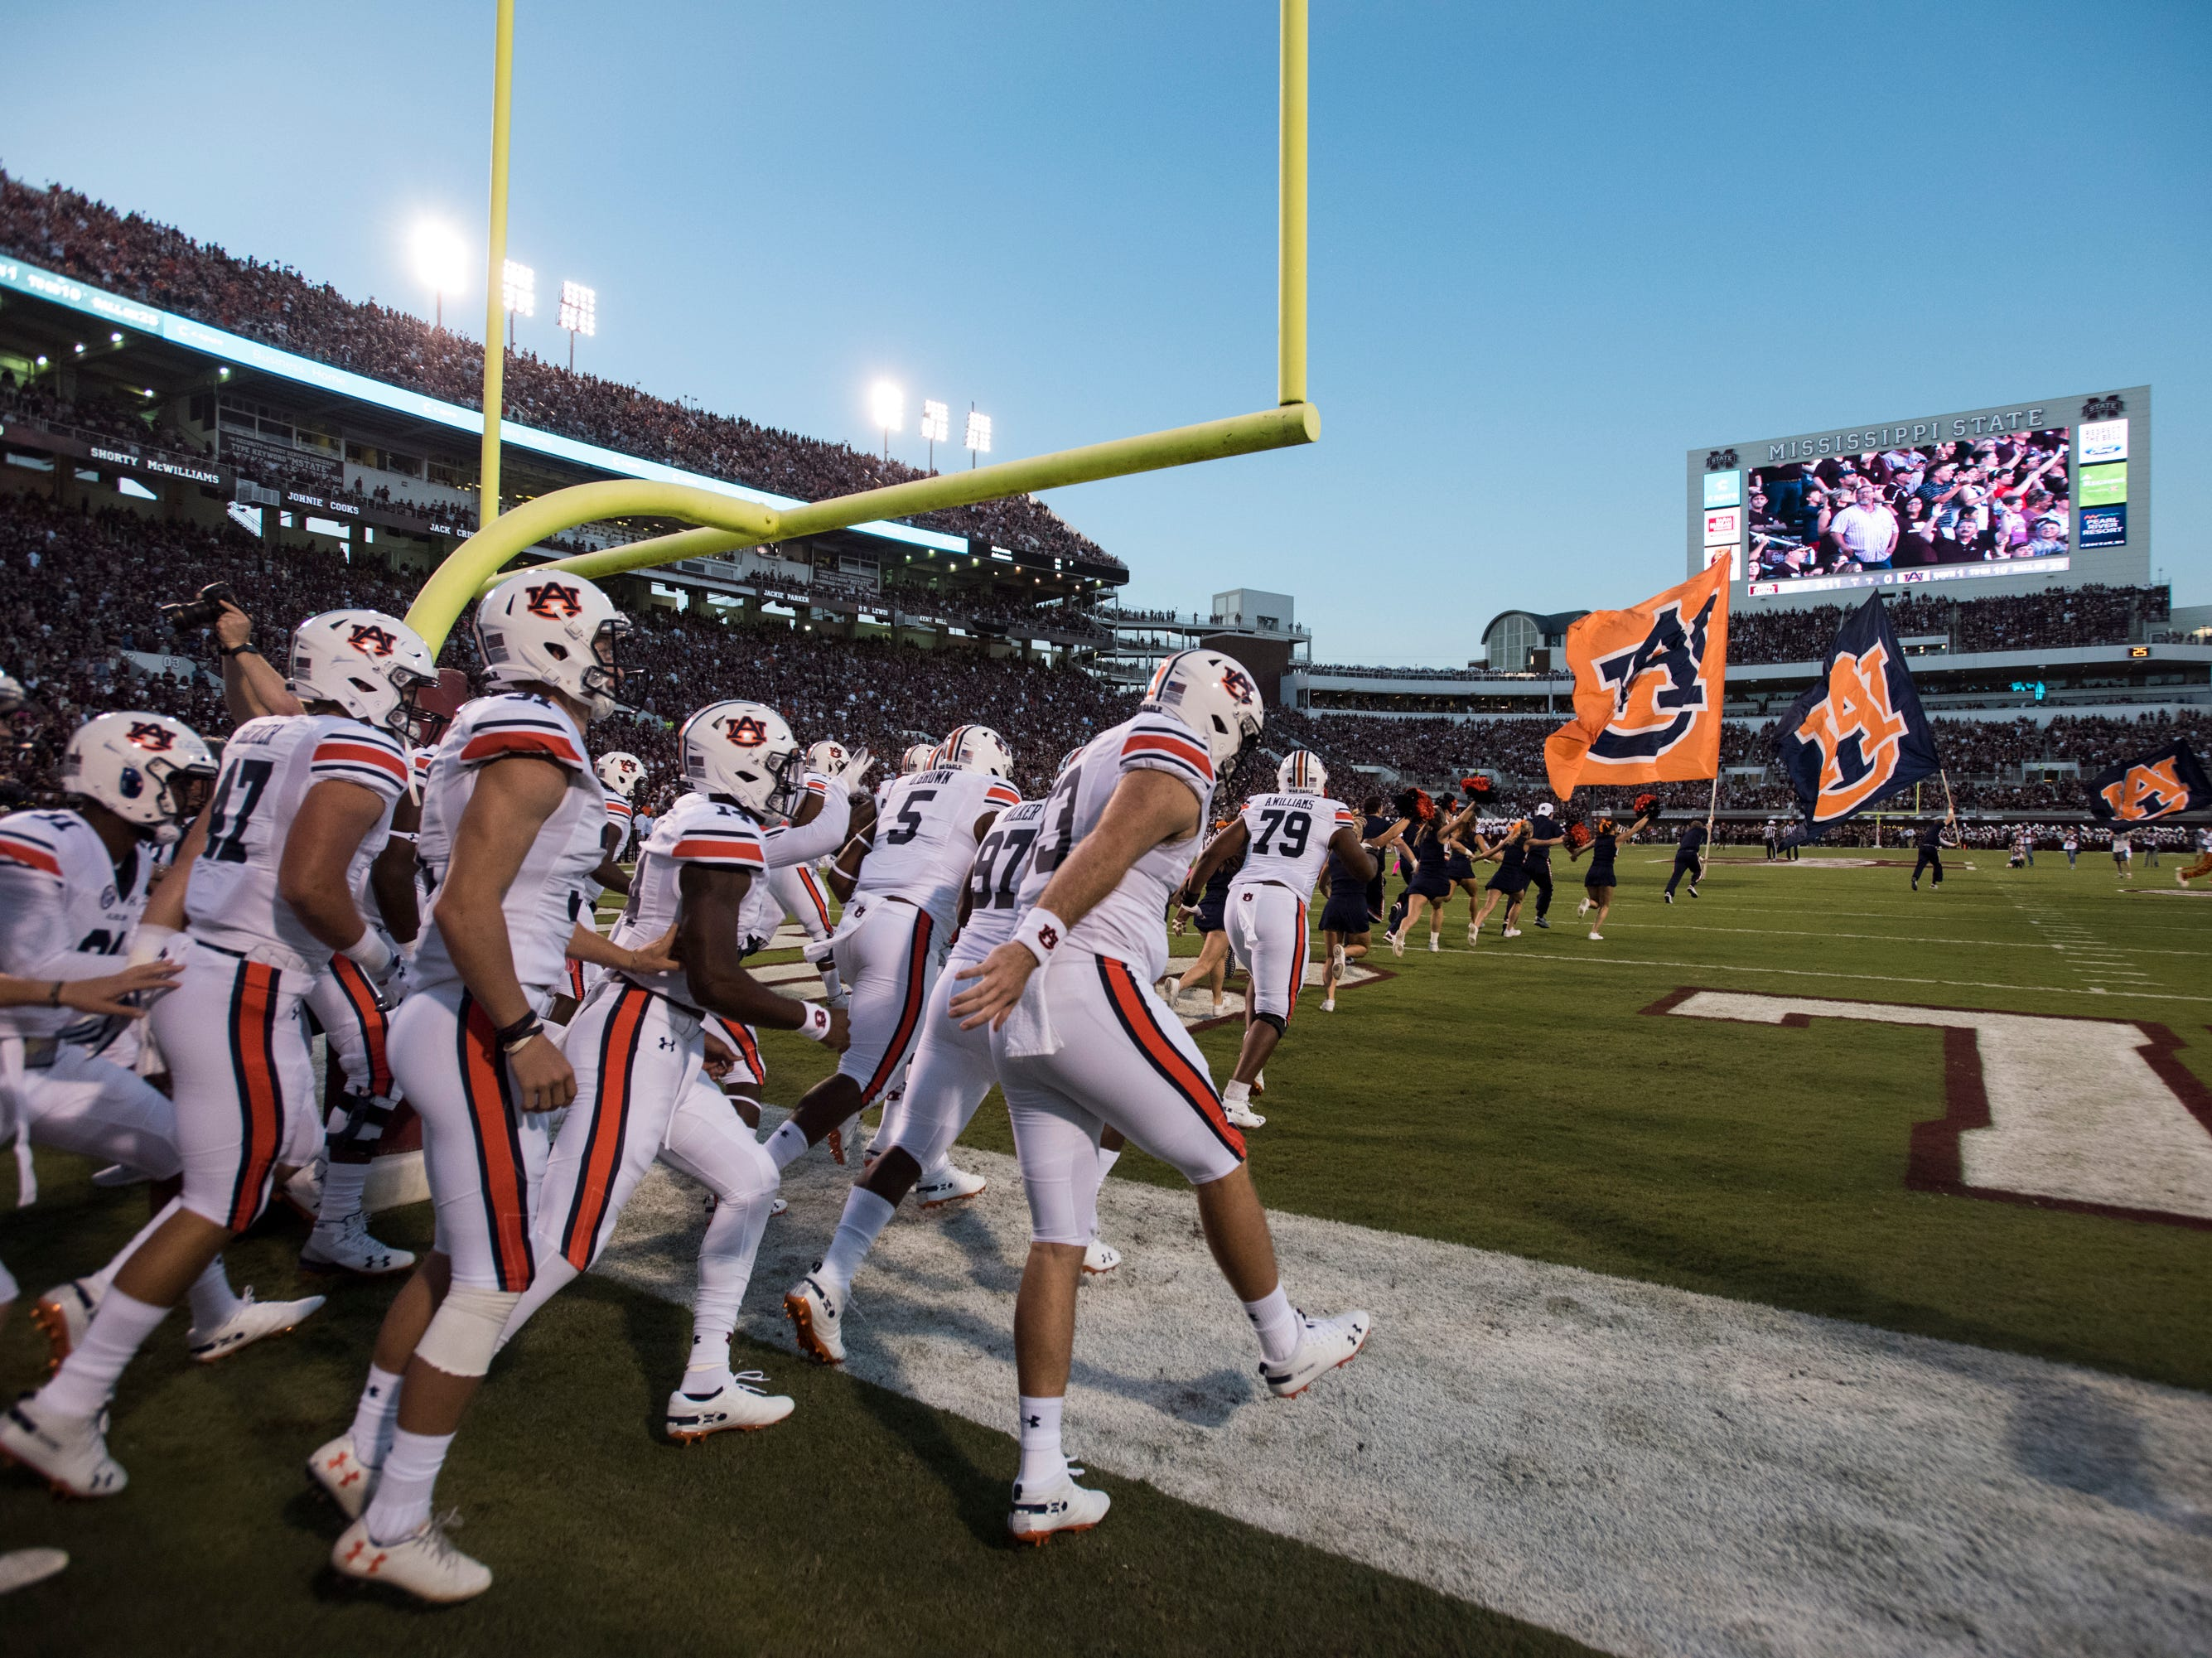 Auburn runs on to the field before the game at Davis Wade Stadium in Starkville, Miss., on Saturday, Oct. 6, 2018. Mississippi State leads Auburn 13-3 at halftime.